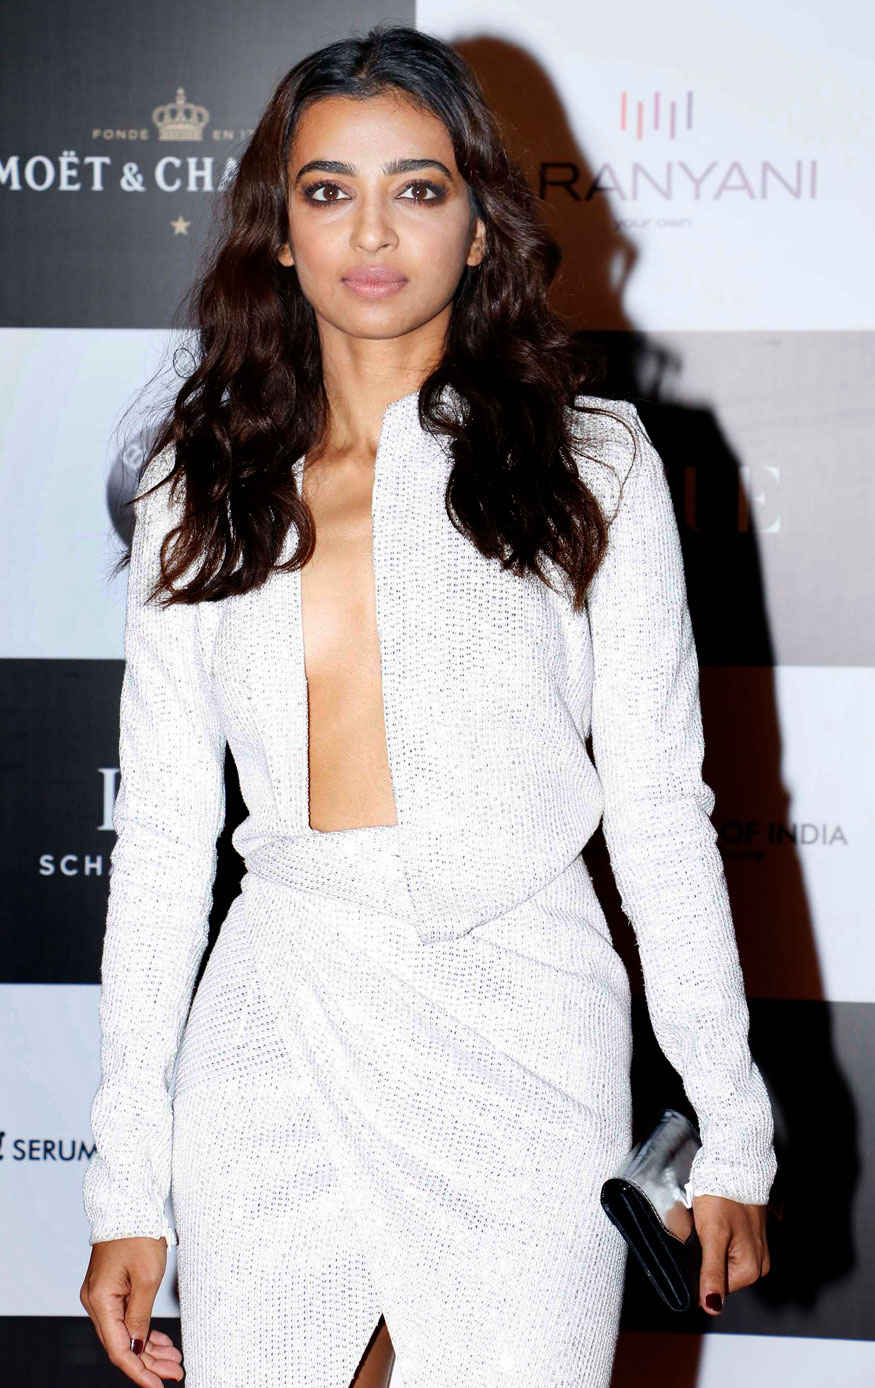 Radhika Apte Attends The 'Vogue Women of the Year Awards 2017' at Grand Hyatt Hotel